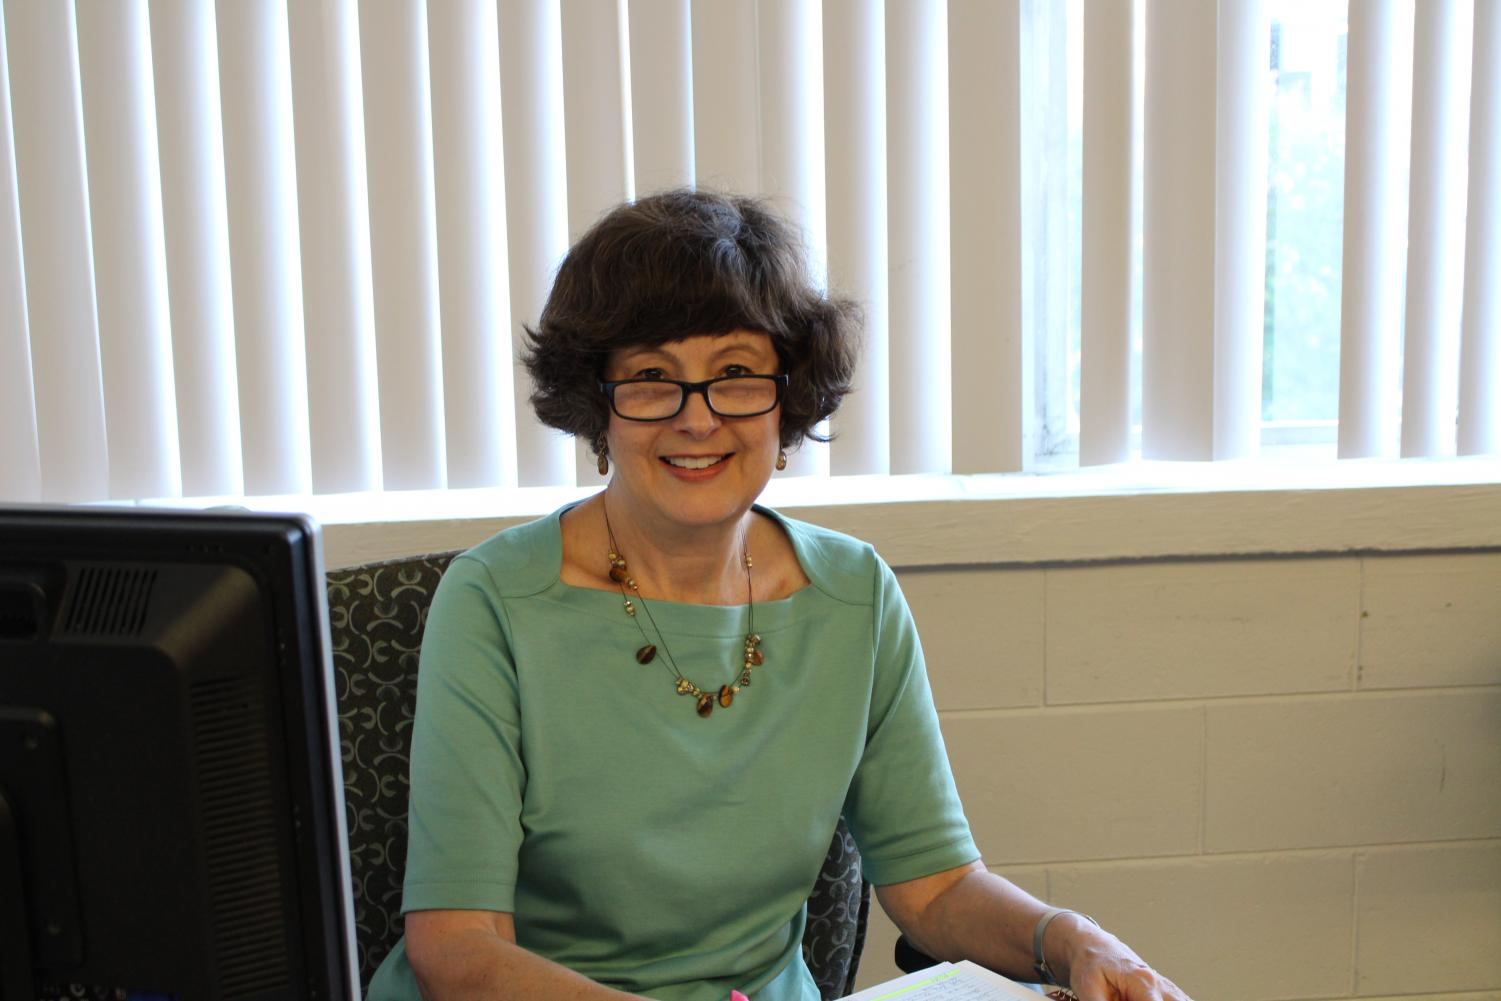 The new English IB teacher, Deborah Van Pelt